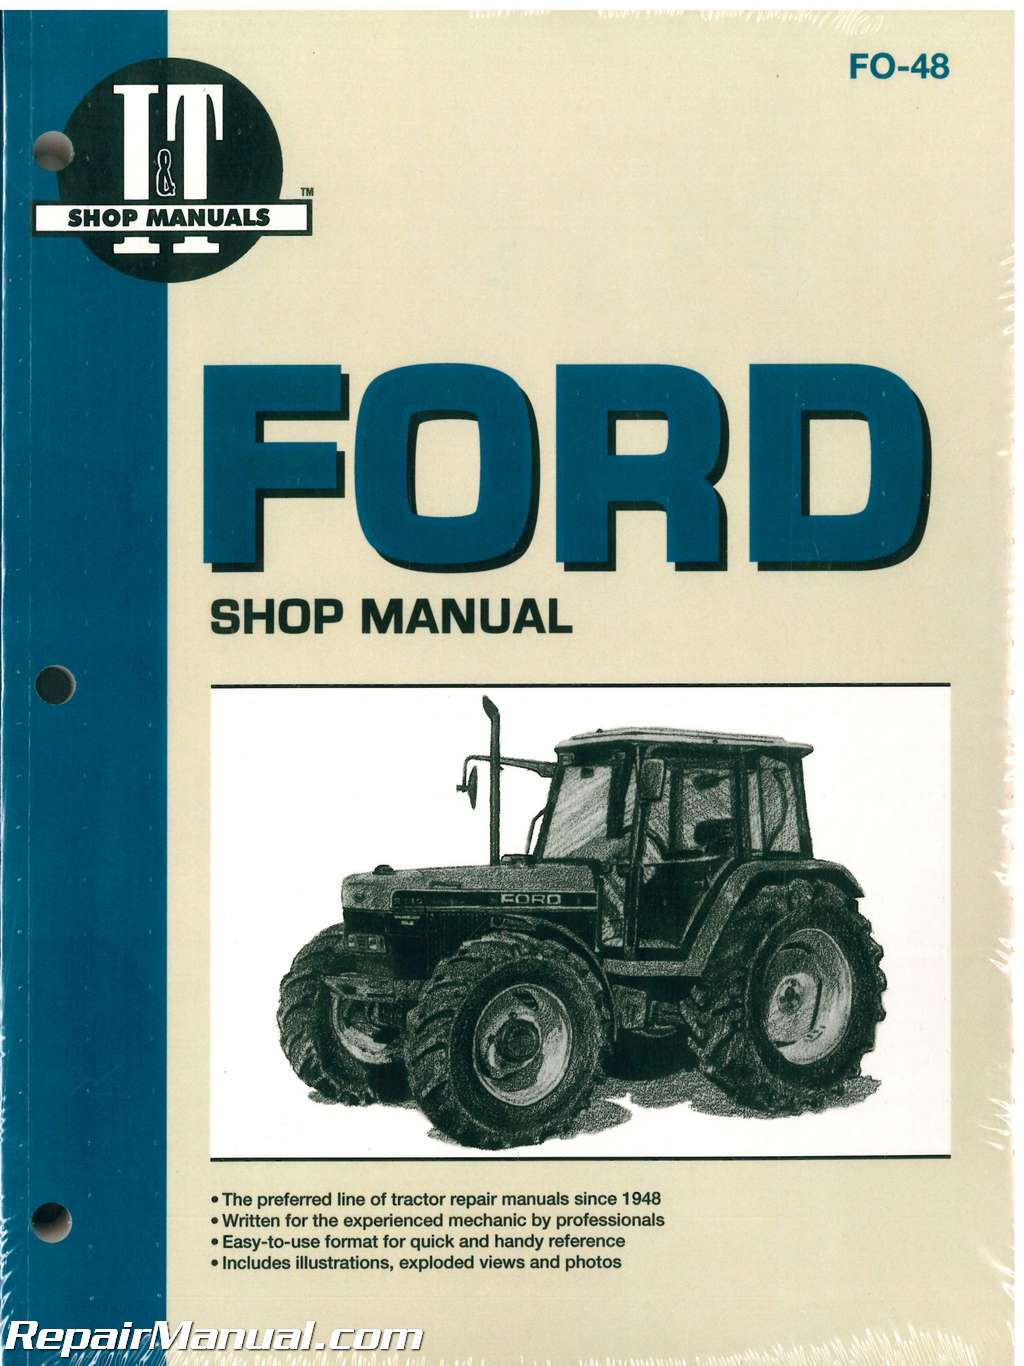 9E9C70E Wiring Diagram 7600 Tractor 1977 Ford | Wiring LibraryWiring Library